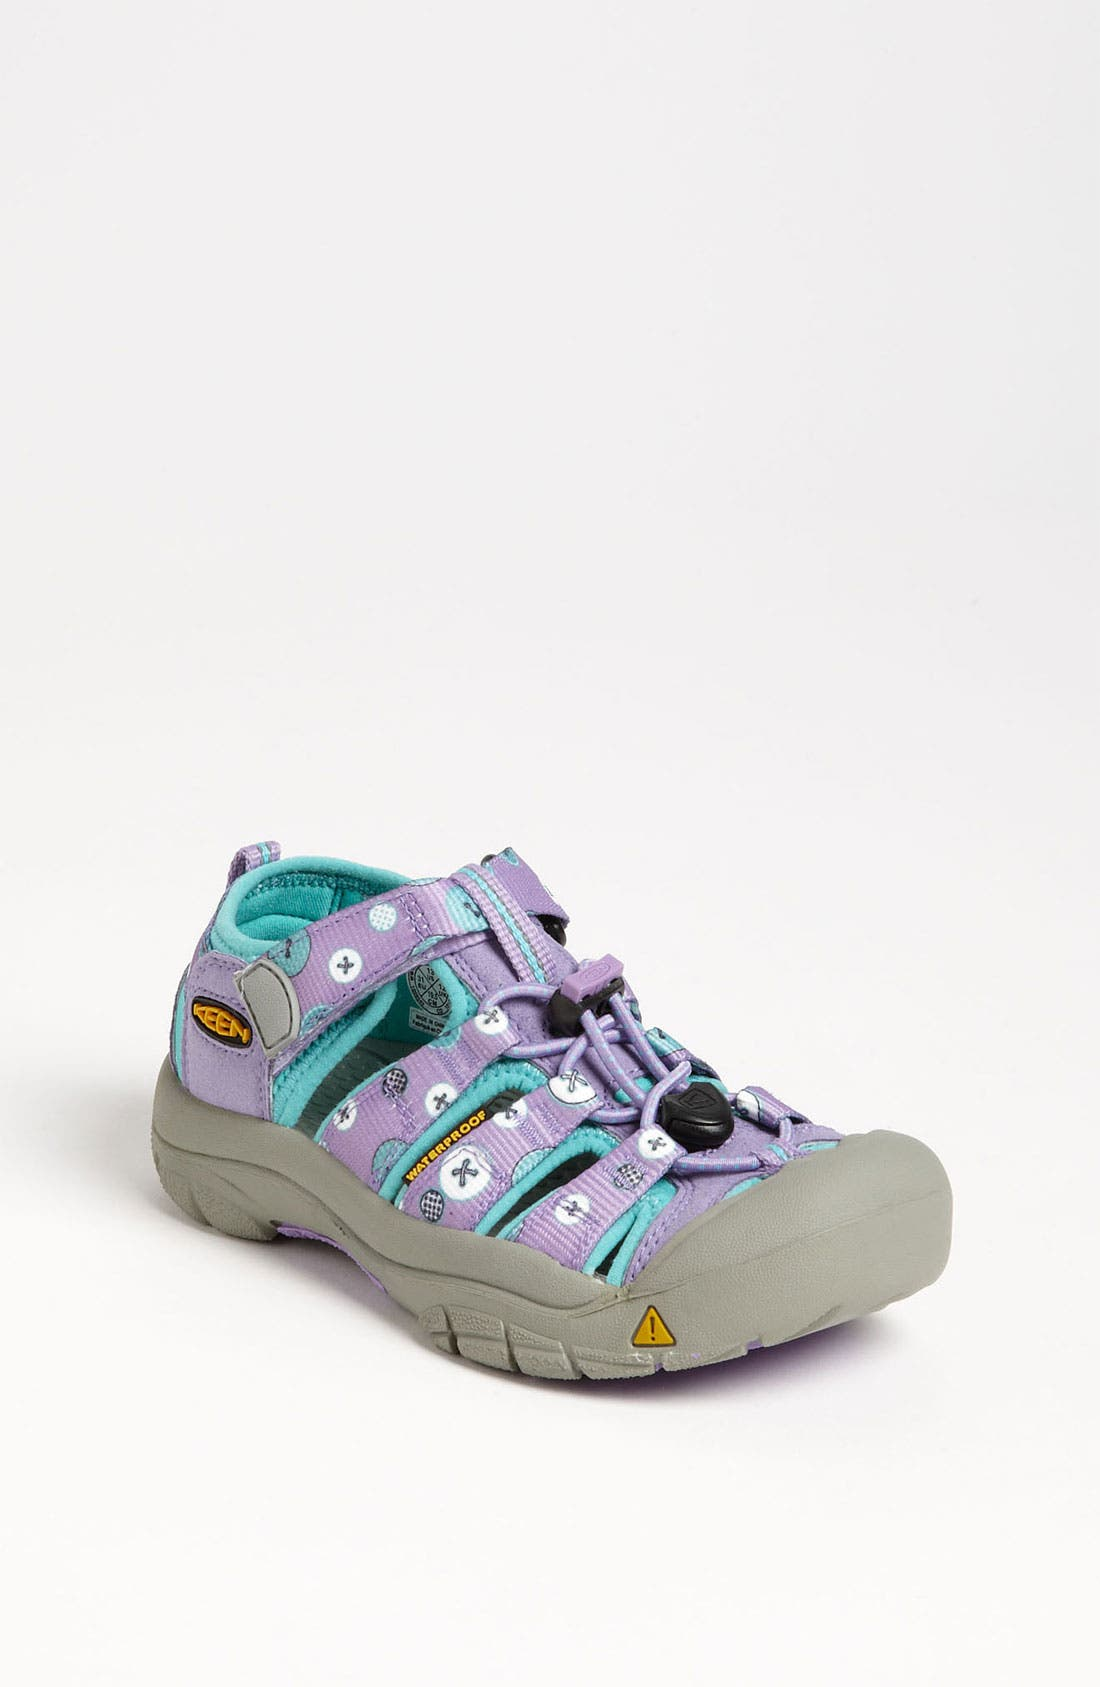 Main Image - Keen 'Newport H2' Sandal (Toddler & Little Kid)